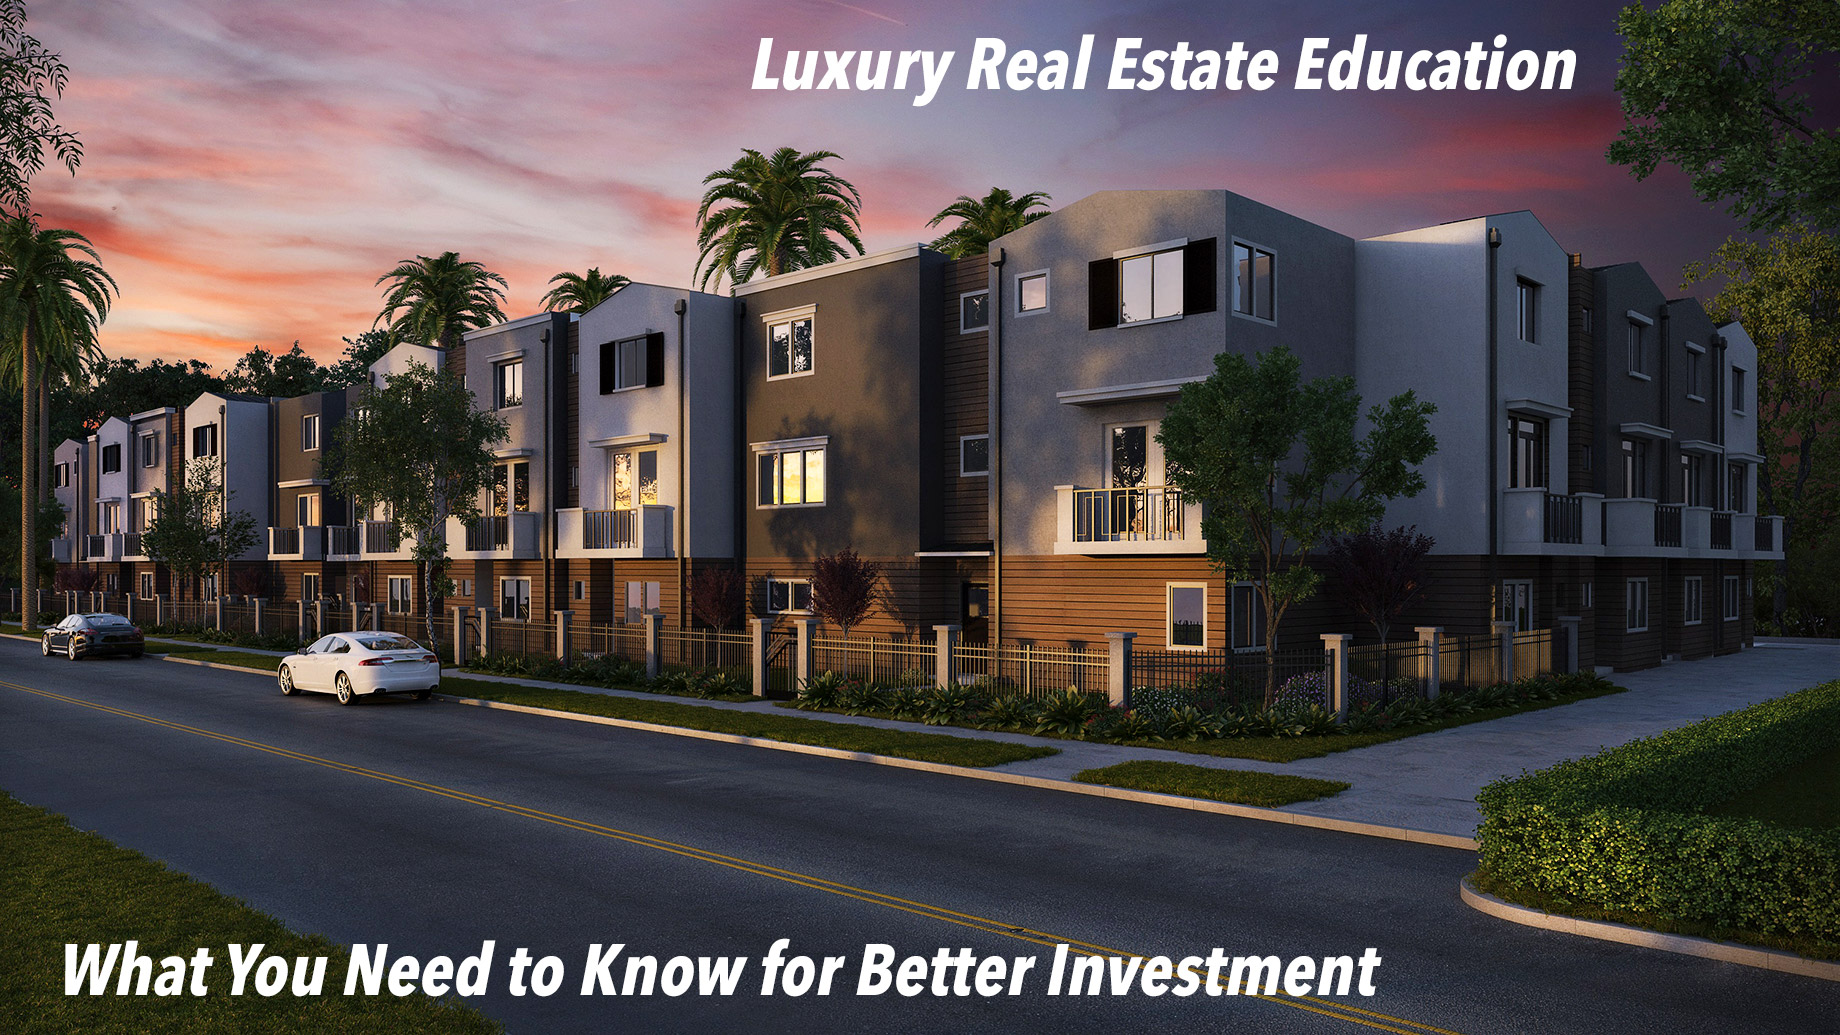 Luxury Real Estate Education - What You Need to Know for Better Investment